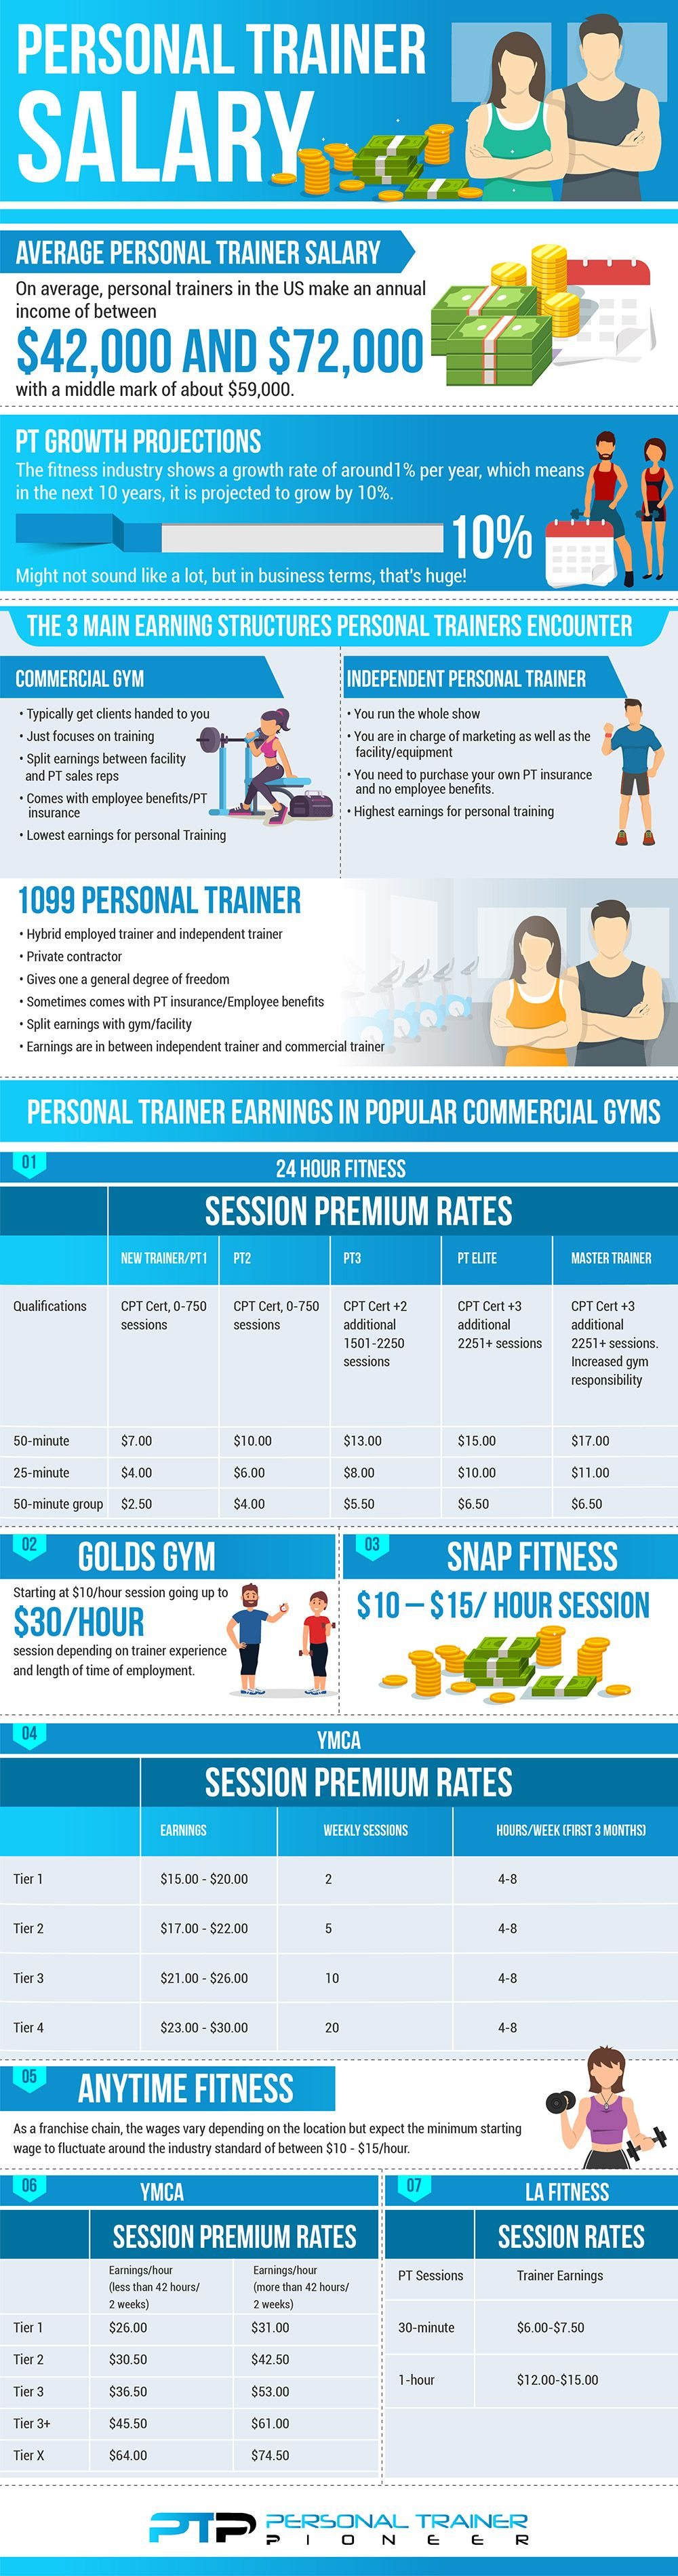 Facts and numbers about personal trainer salaries